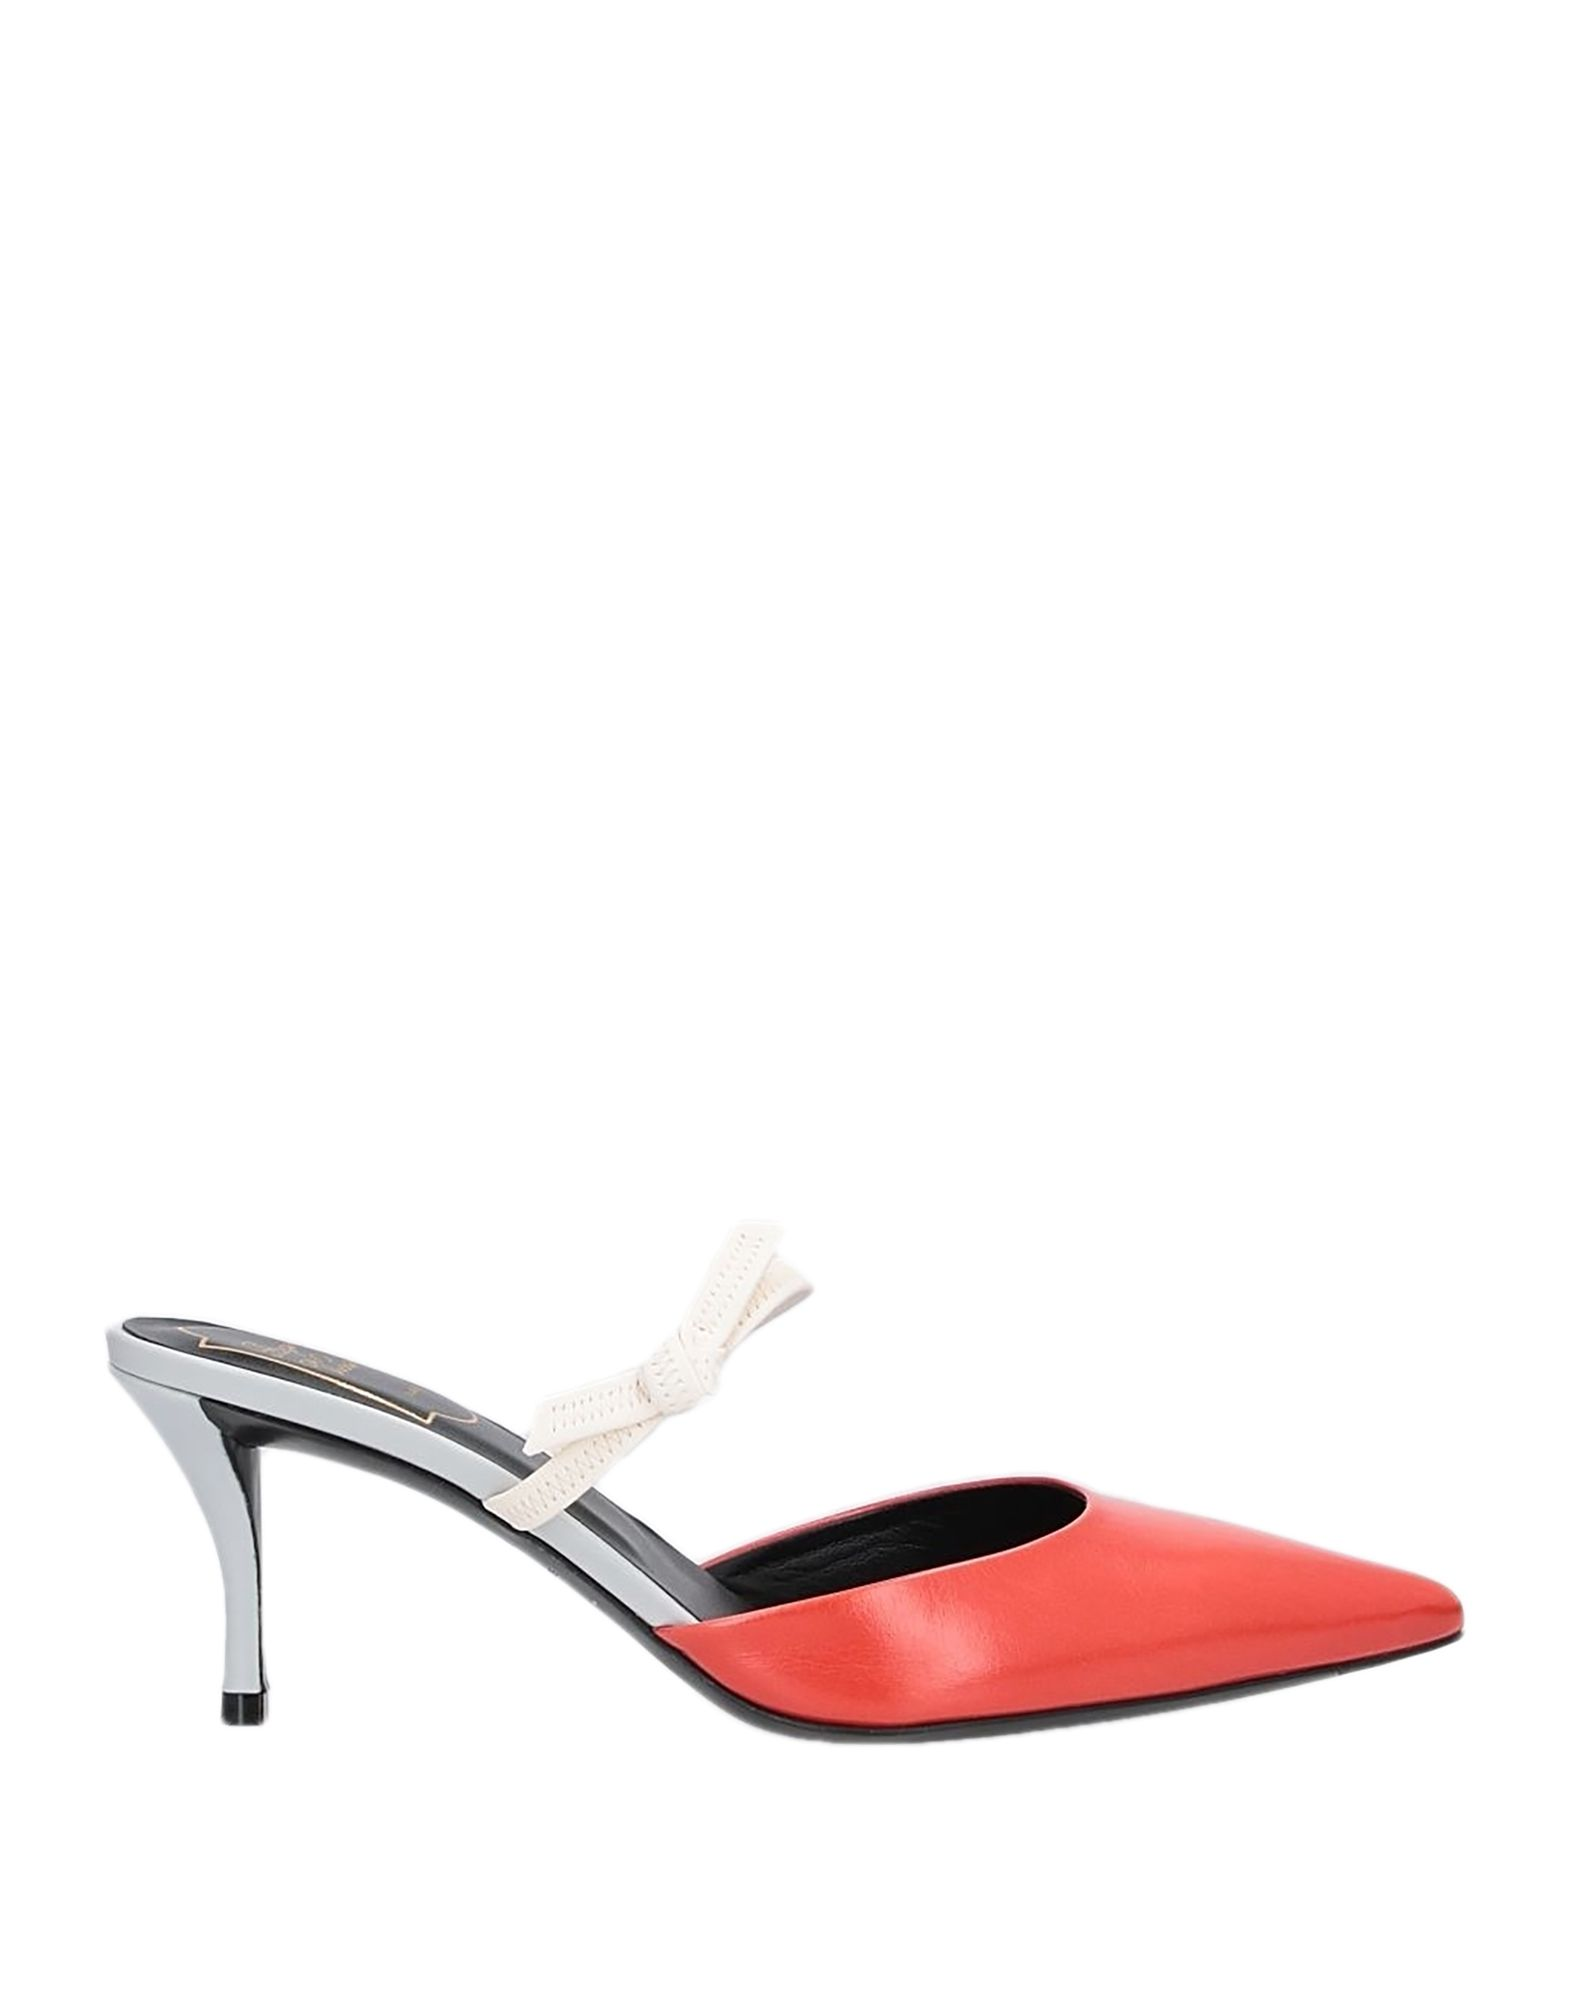 ROGER VIVIER Mules. leather, no appliqués, two-tone, narrow toeline, spike heel, covered heel, leather lining, leather sole, contains non-textile parts of animal origin. Soft Leather